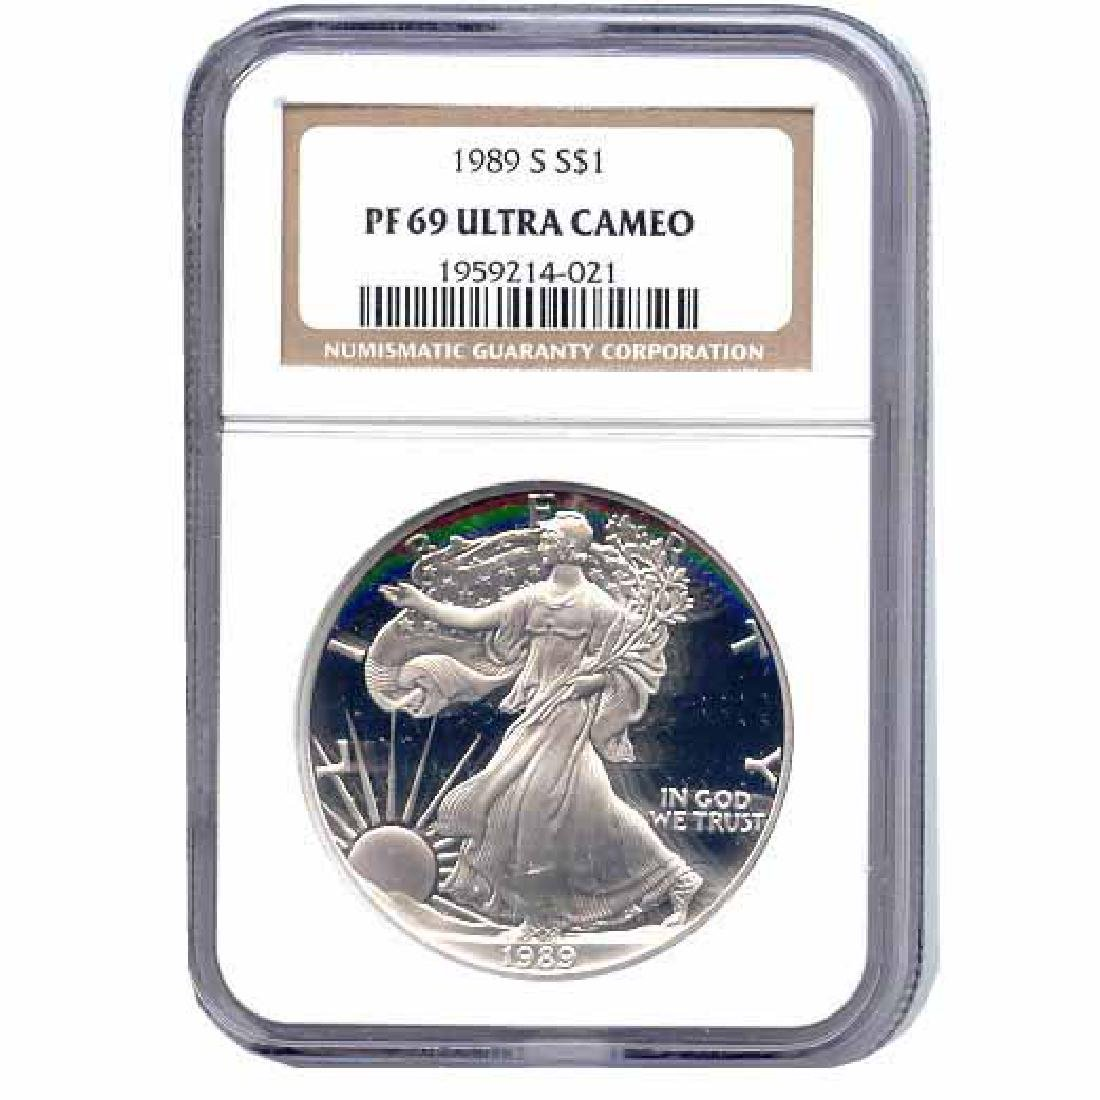 Certified Proof Silver Eagle PF69 1989